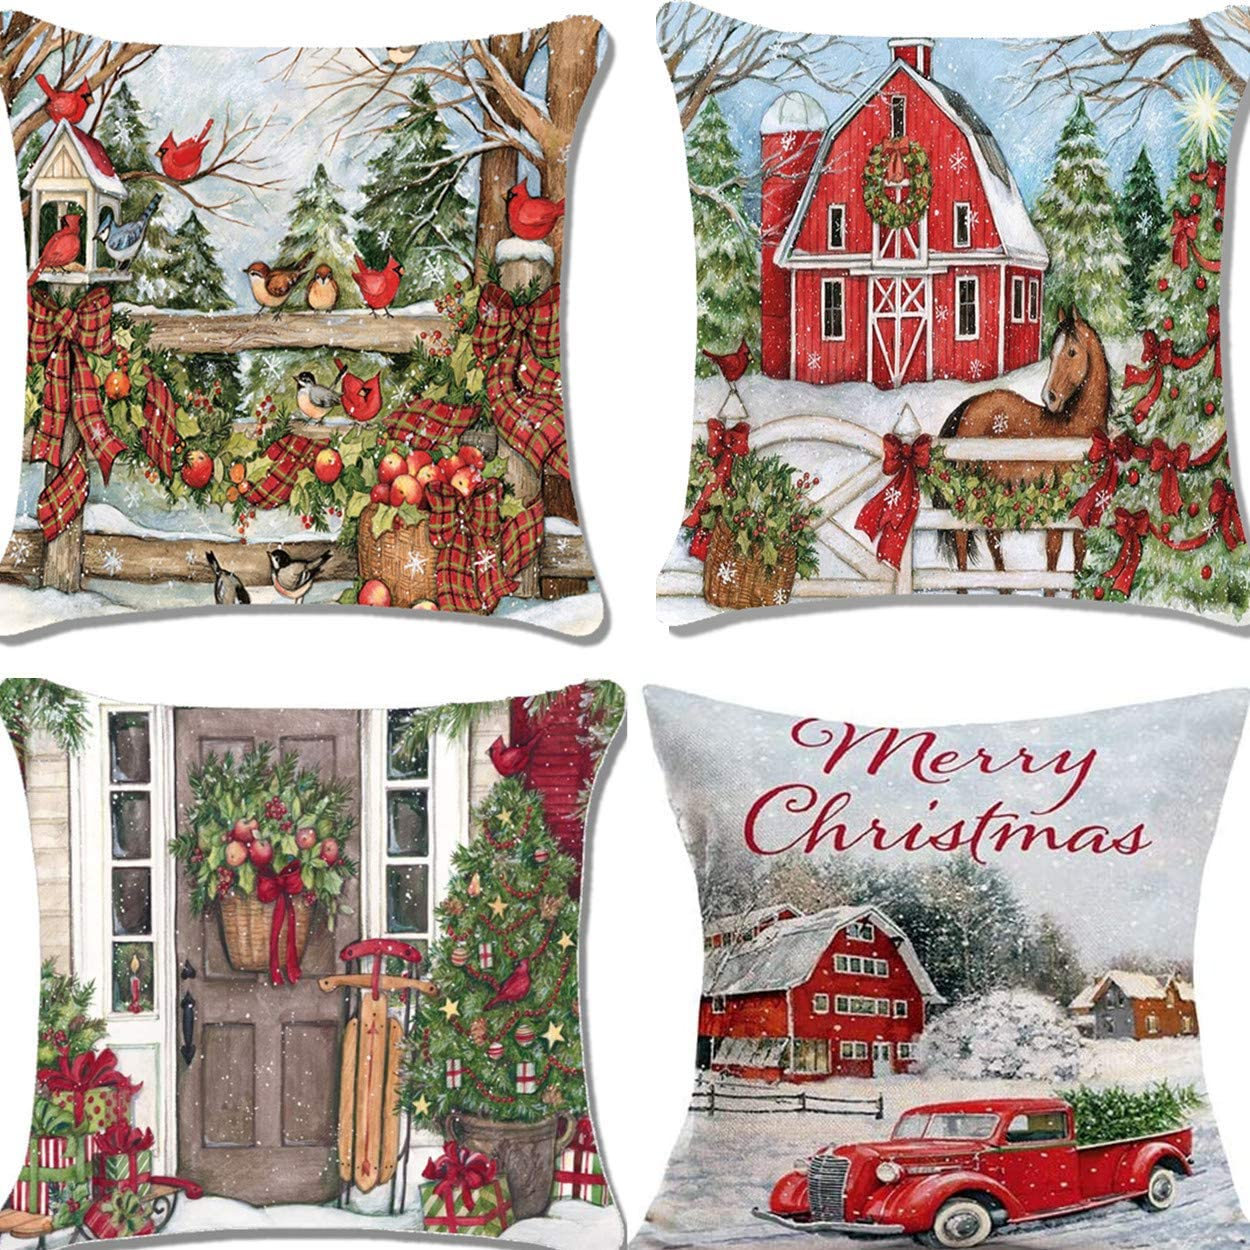 Unibedding Merry Christmas and Christmas Tree Pillows Covers for Christmas Decor Winter Truck Birds Pillow Case Set of 4 Christmas Decoration Cotton Linen Cushion Covers 18 x18, Red